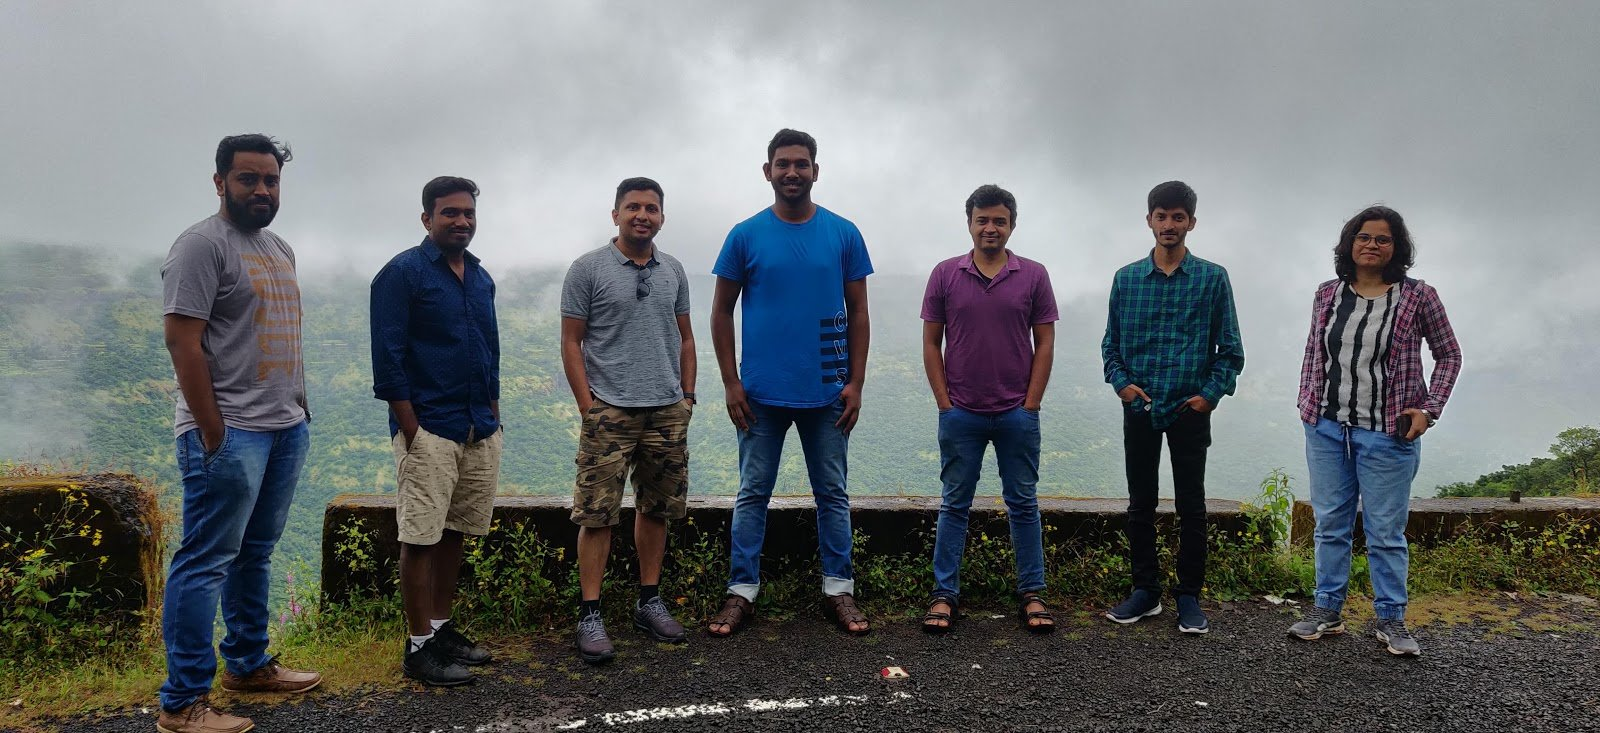 insent team sightseeing in Mahabaleshwar